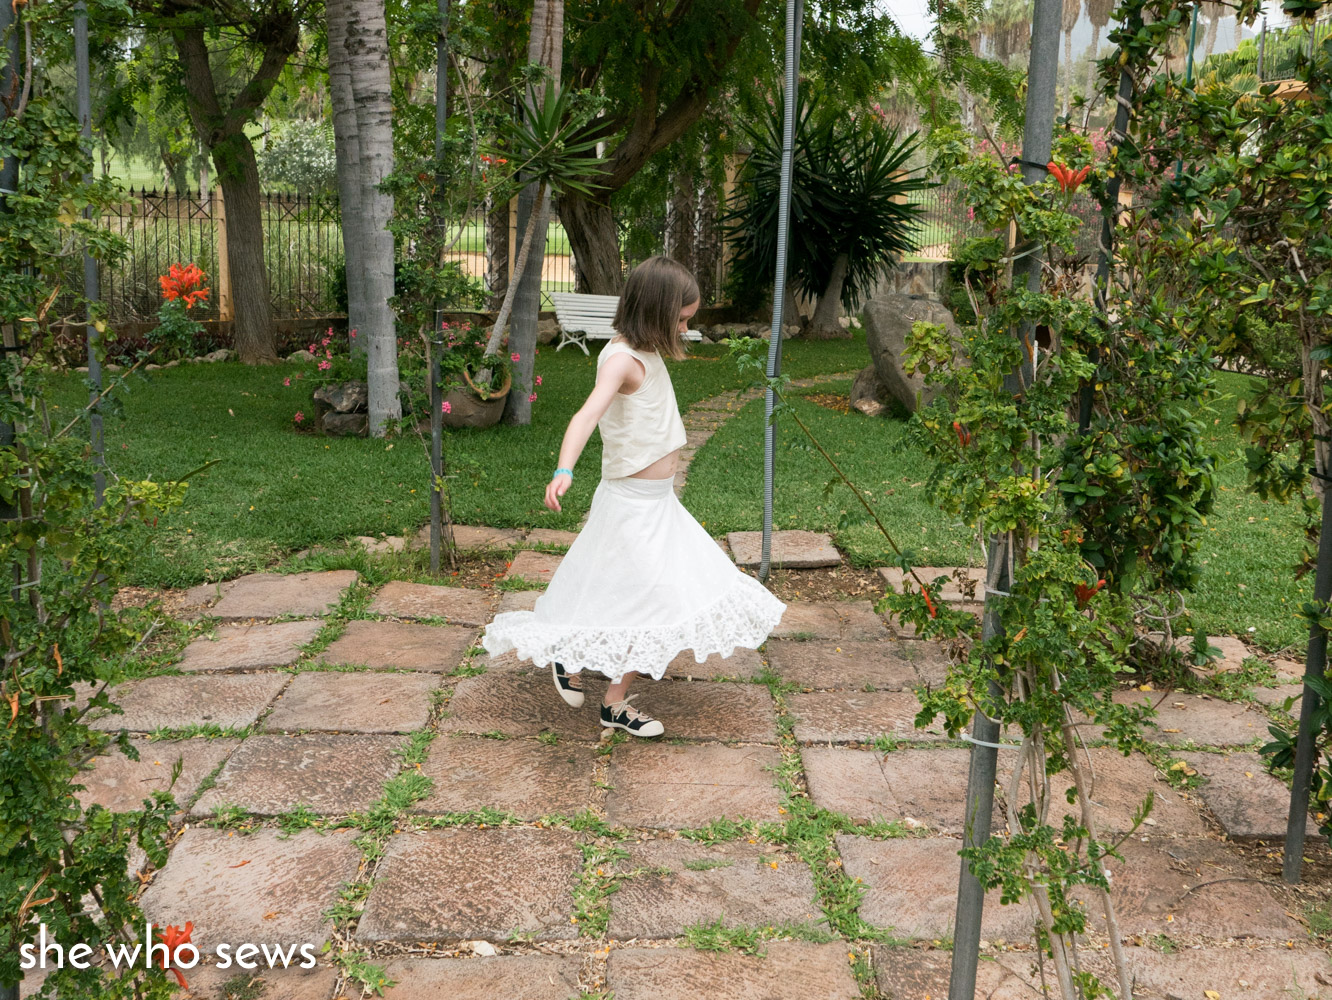 Sewing A Wedding Outfit For A 7 Year Old She Who Sews